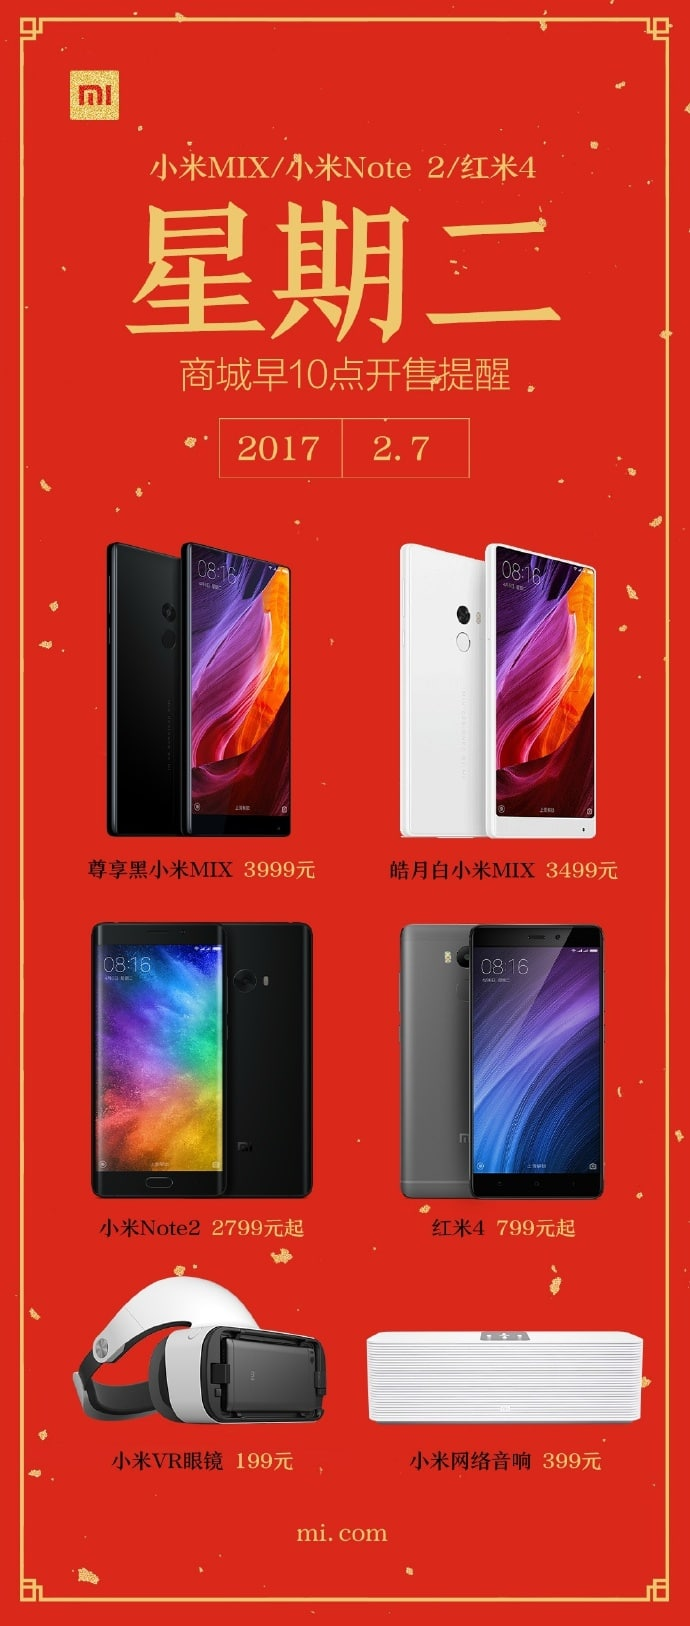 White Xiaomi Mi Mix flash sale